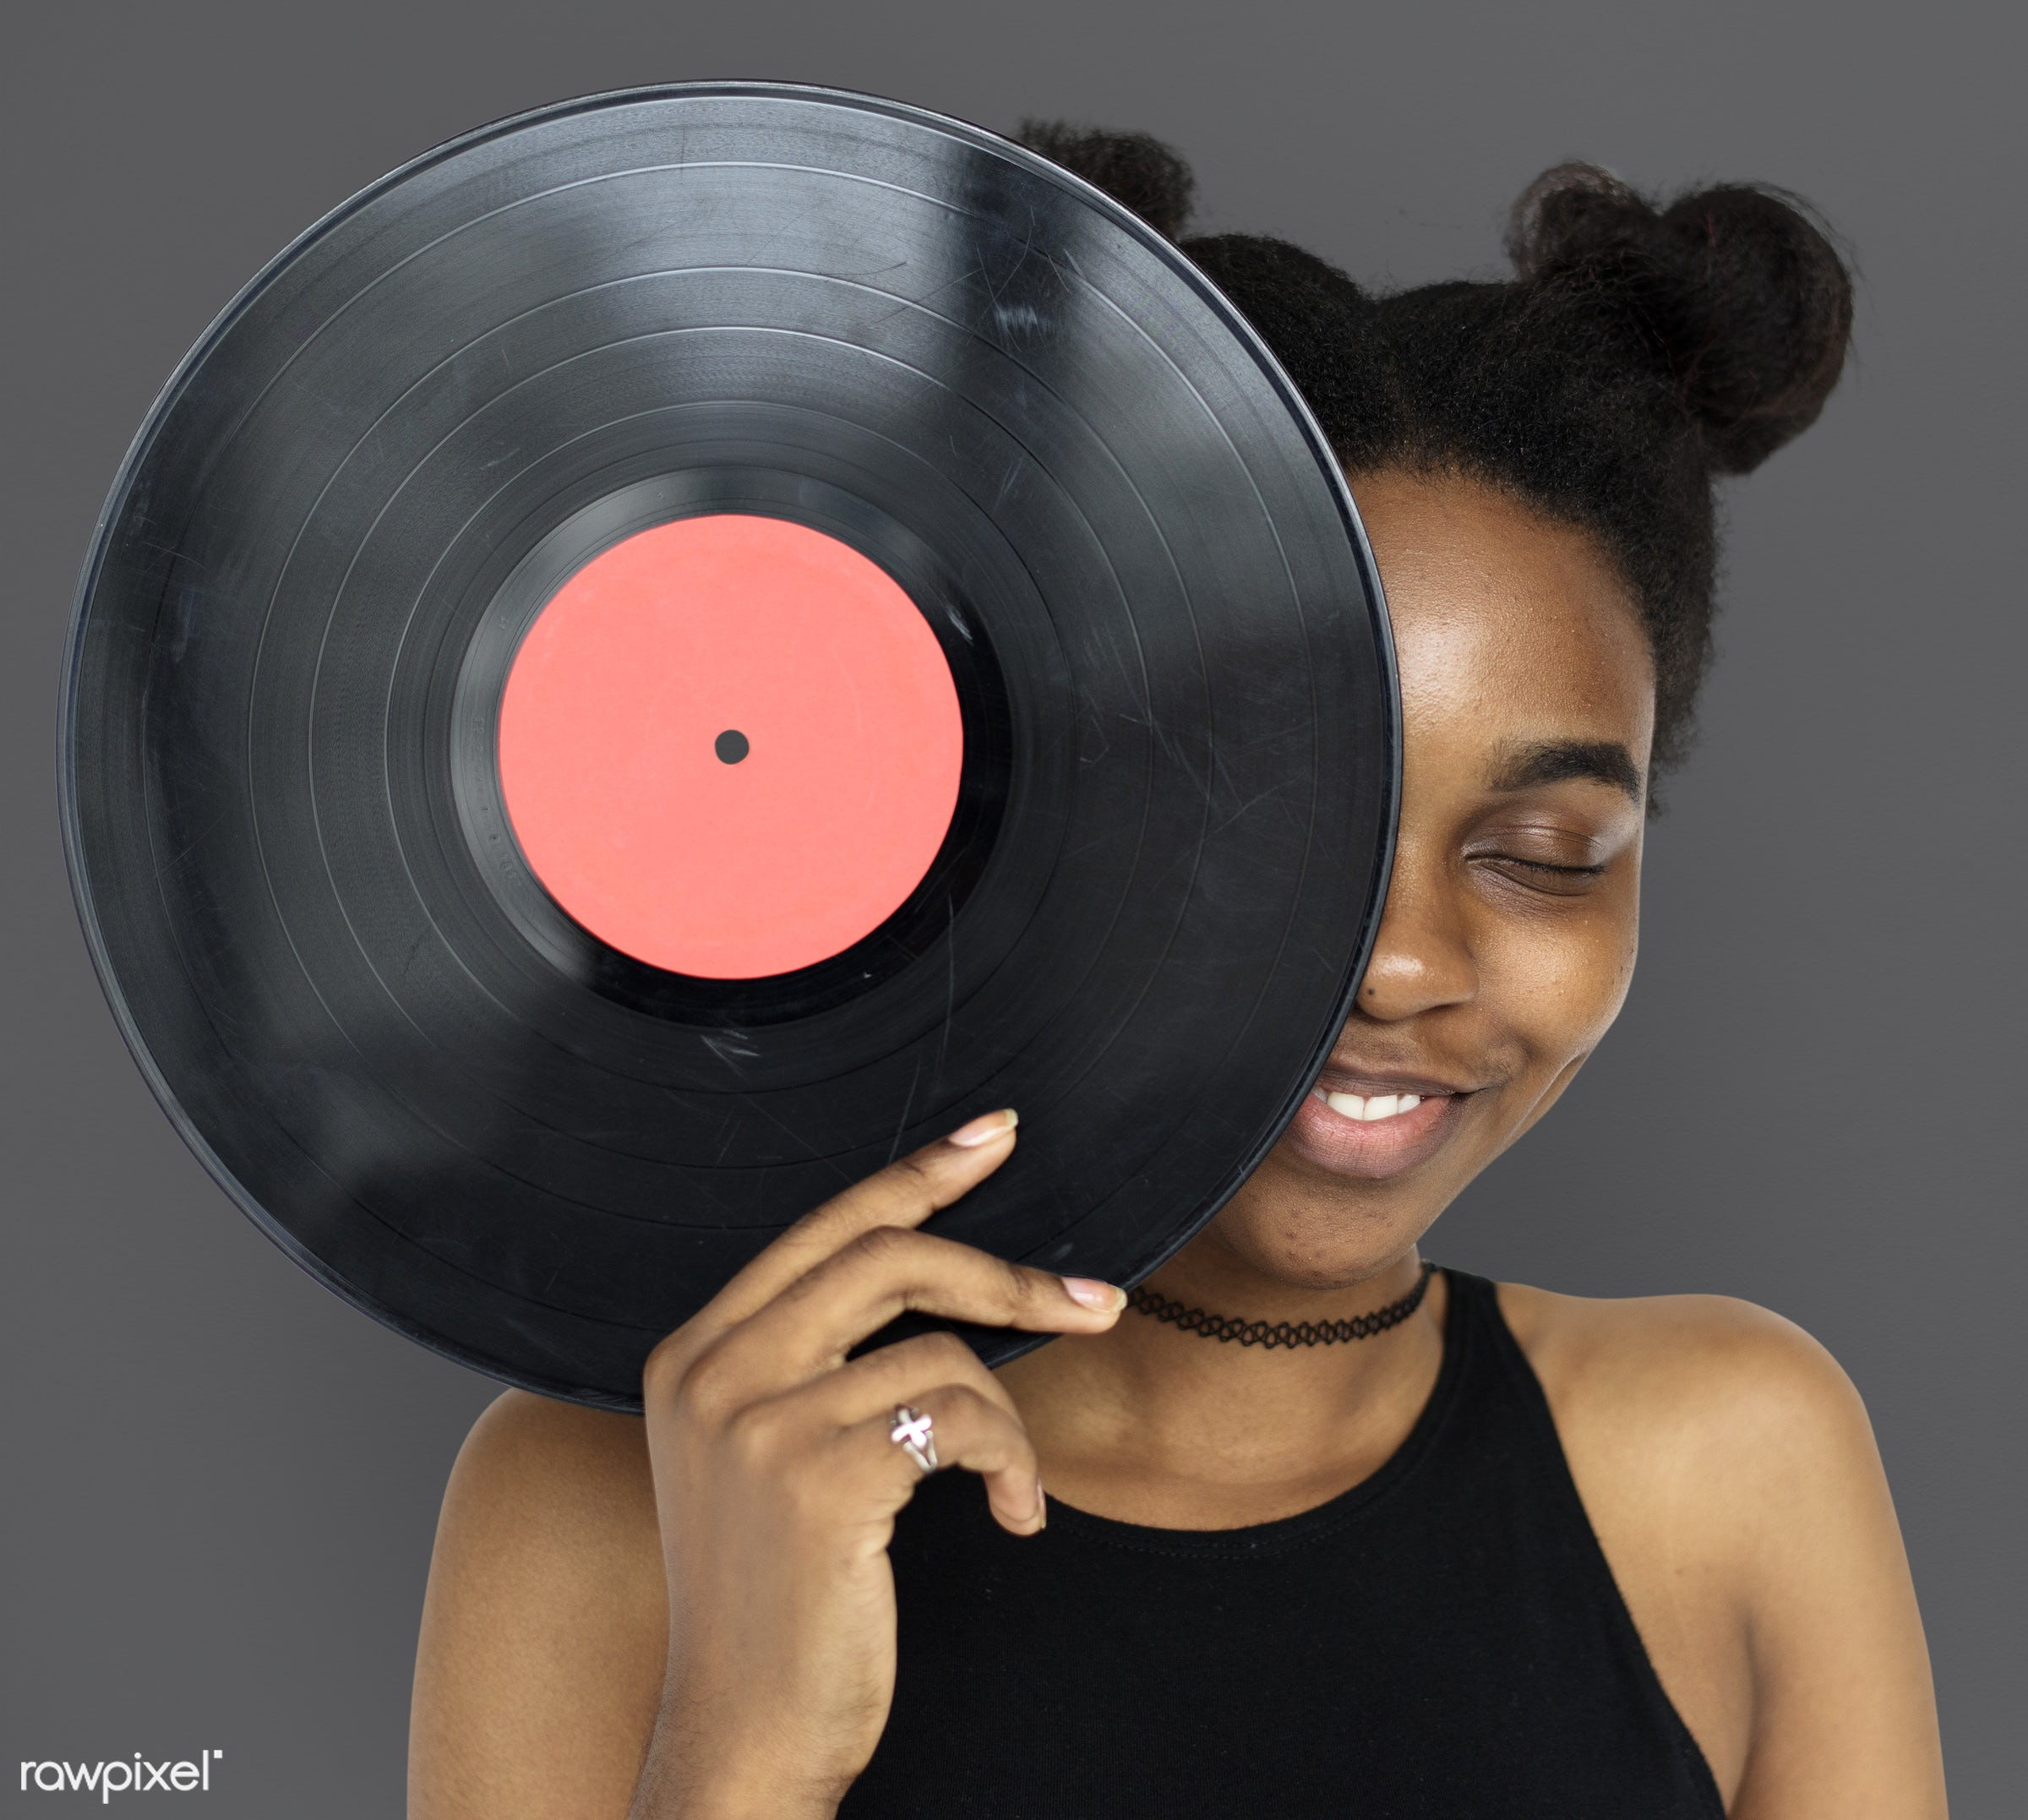 studio, pastel, model, person, retro, race, people, style, woman, lifestyle, casual, vinyl, beige, feminism, music, isolated...